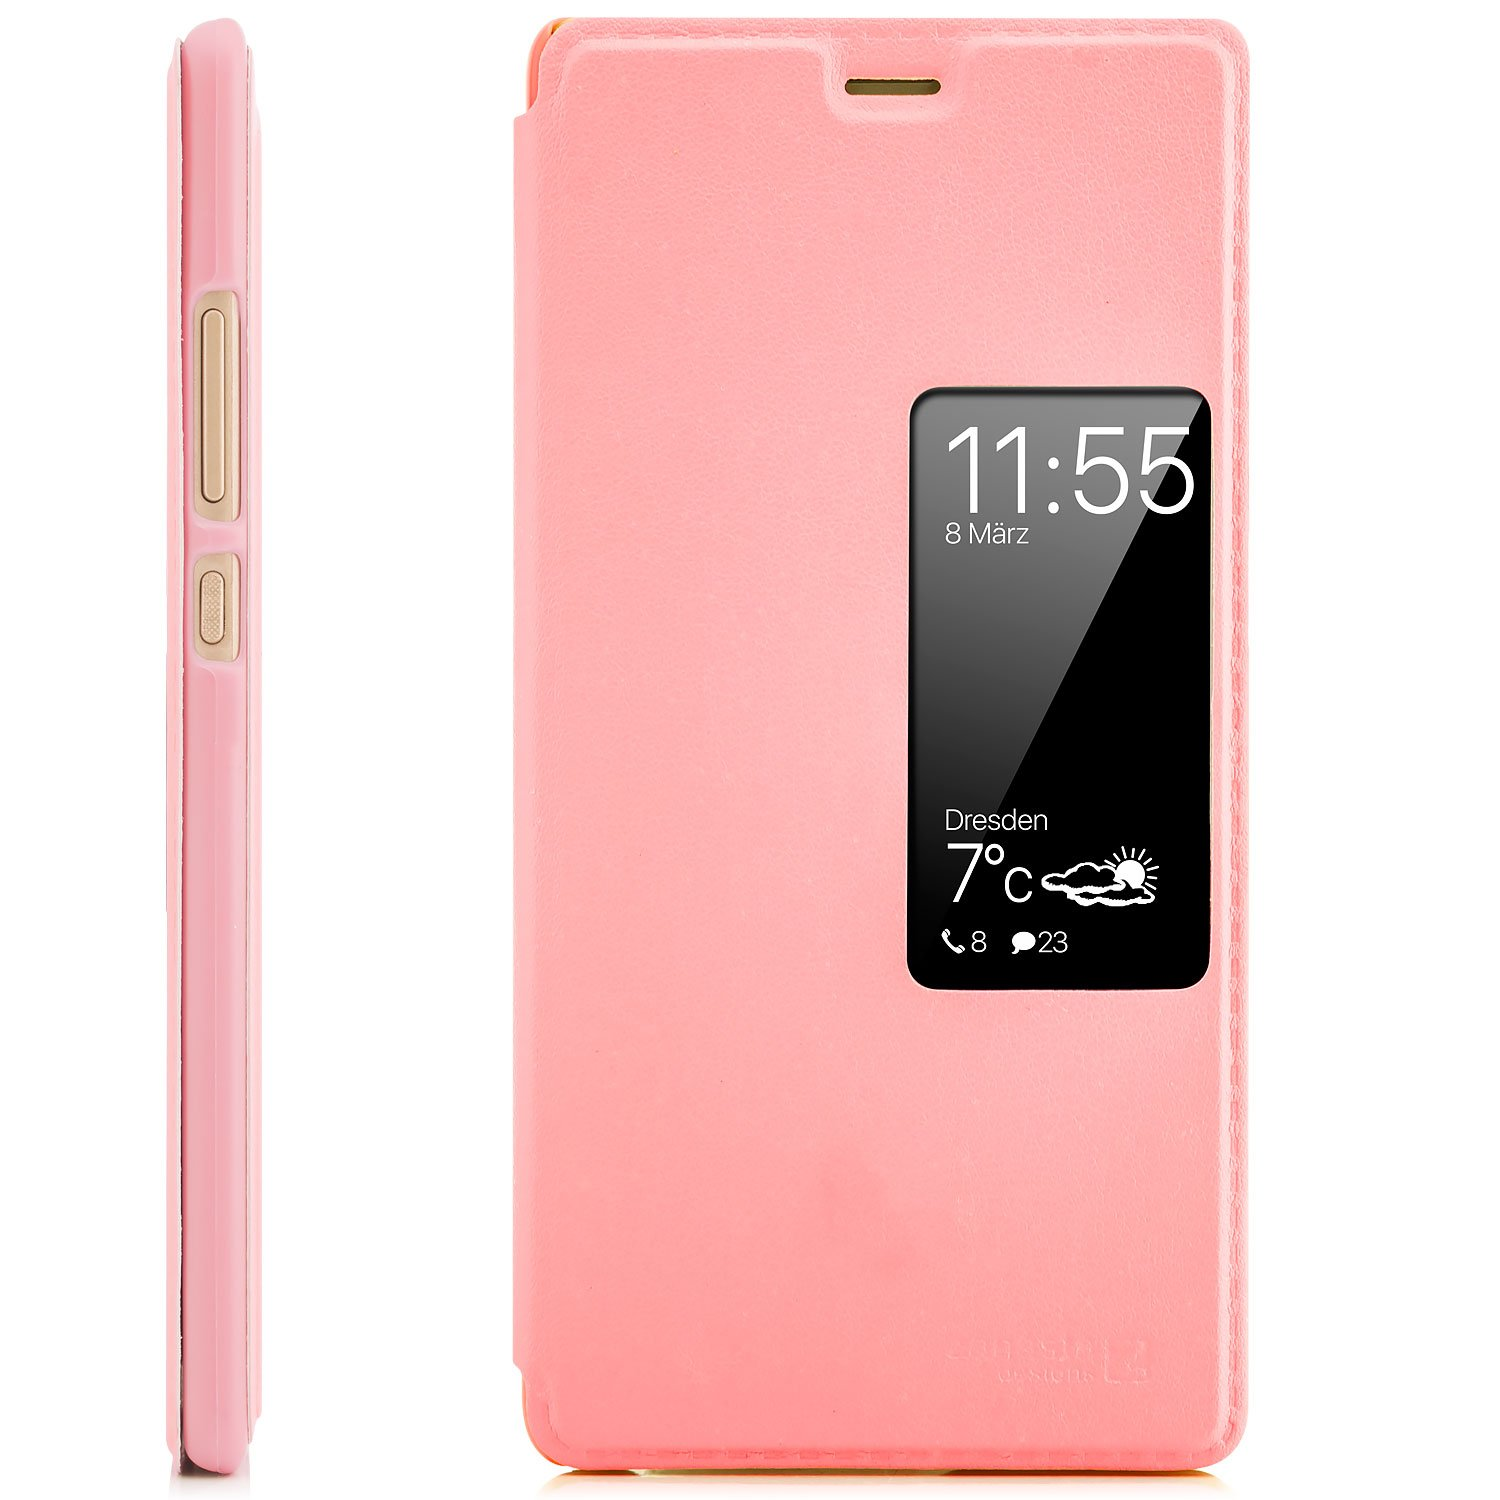 Huawei P9 Case Protector Flip Cover [Zanasta Designs] Phone Wallet / View Flip Case with Window, High Quality Premium [Slim Profile] Pink